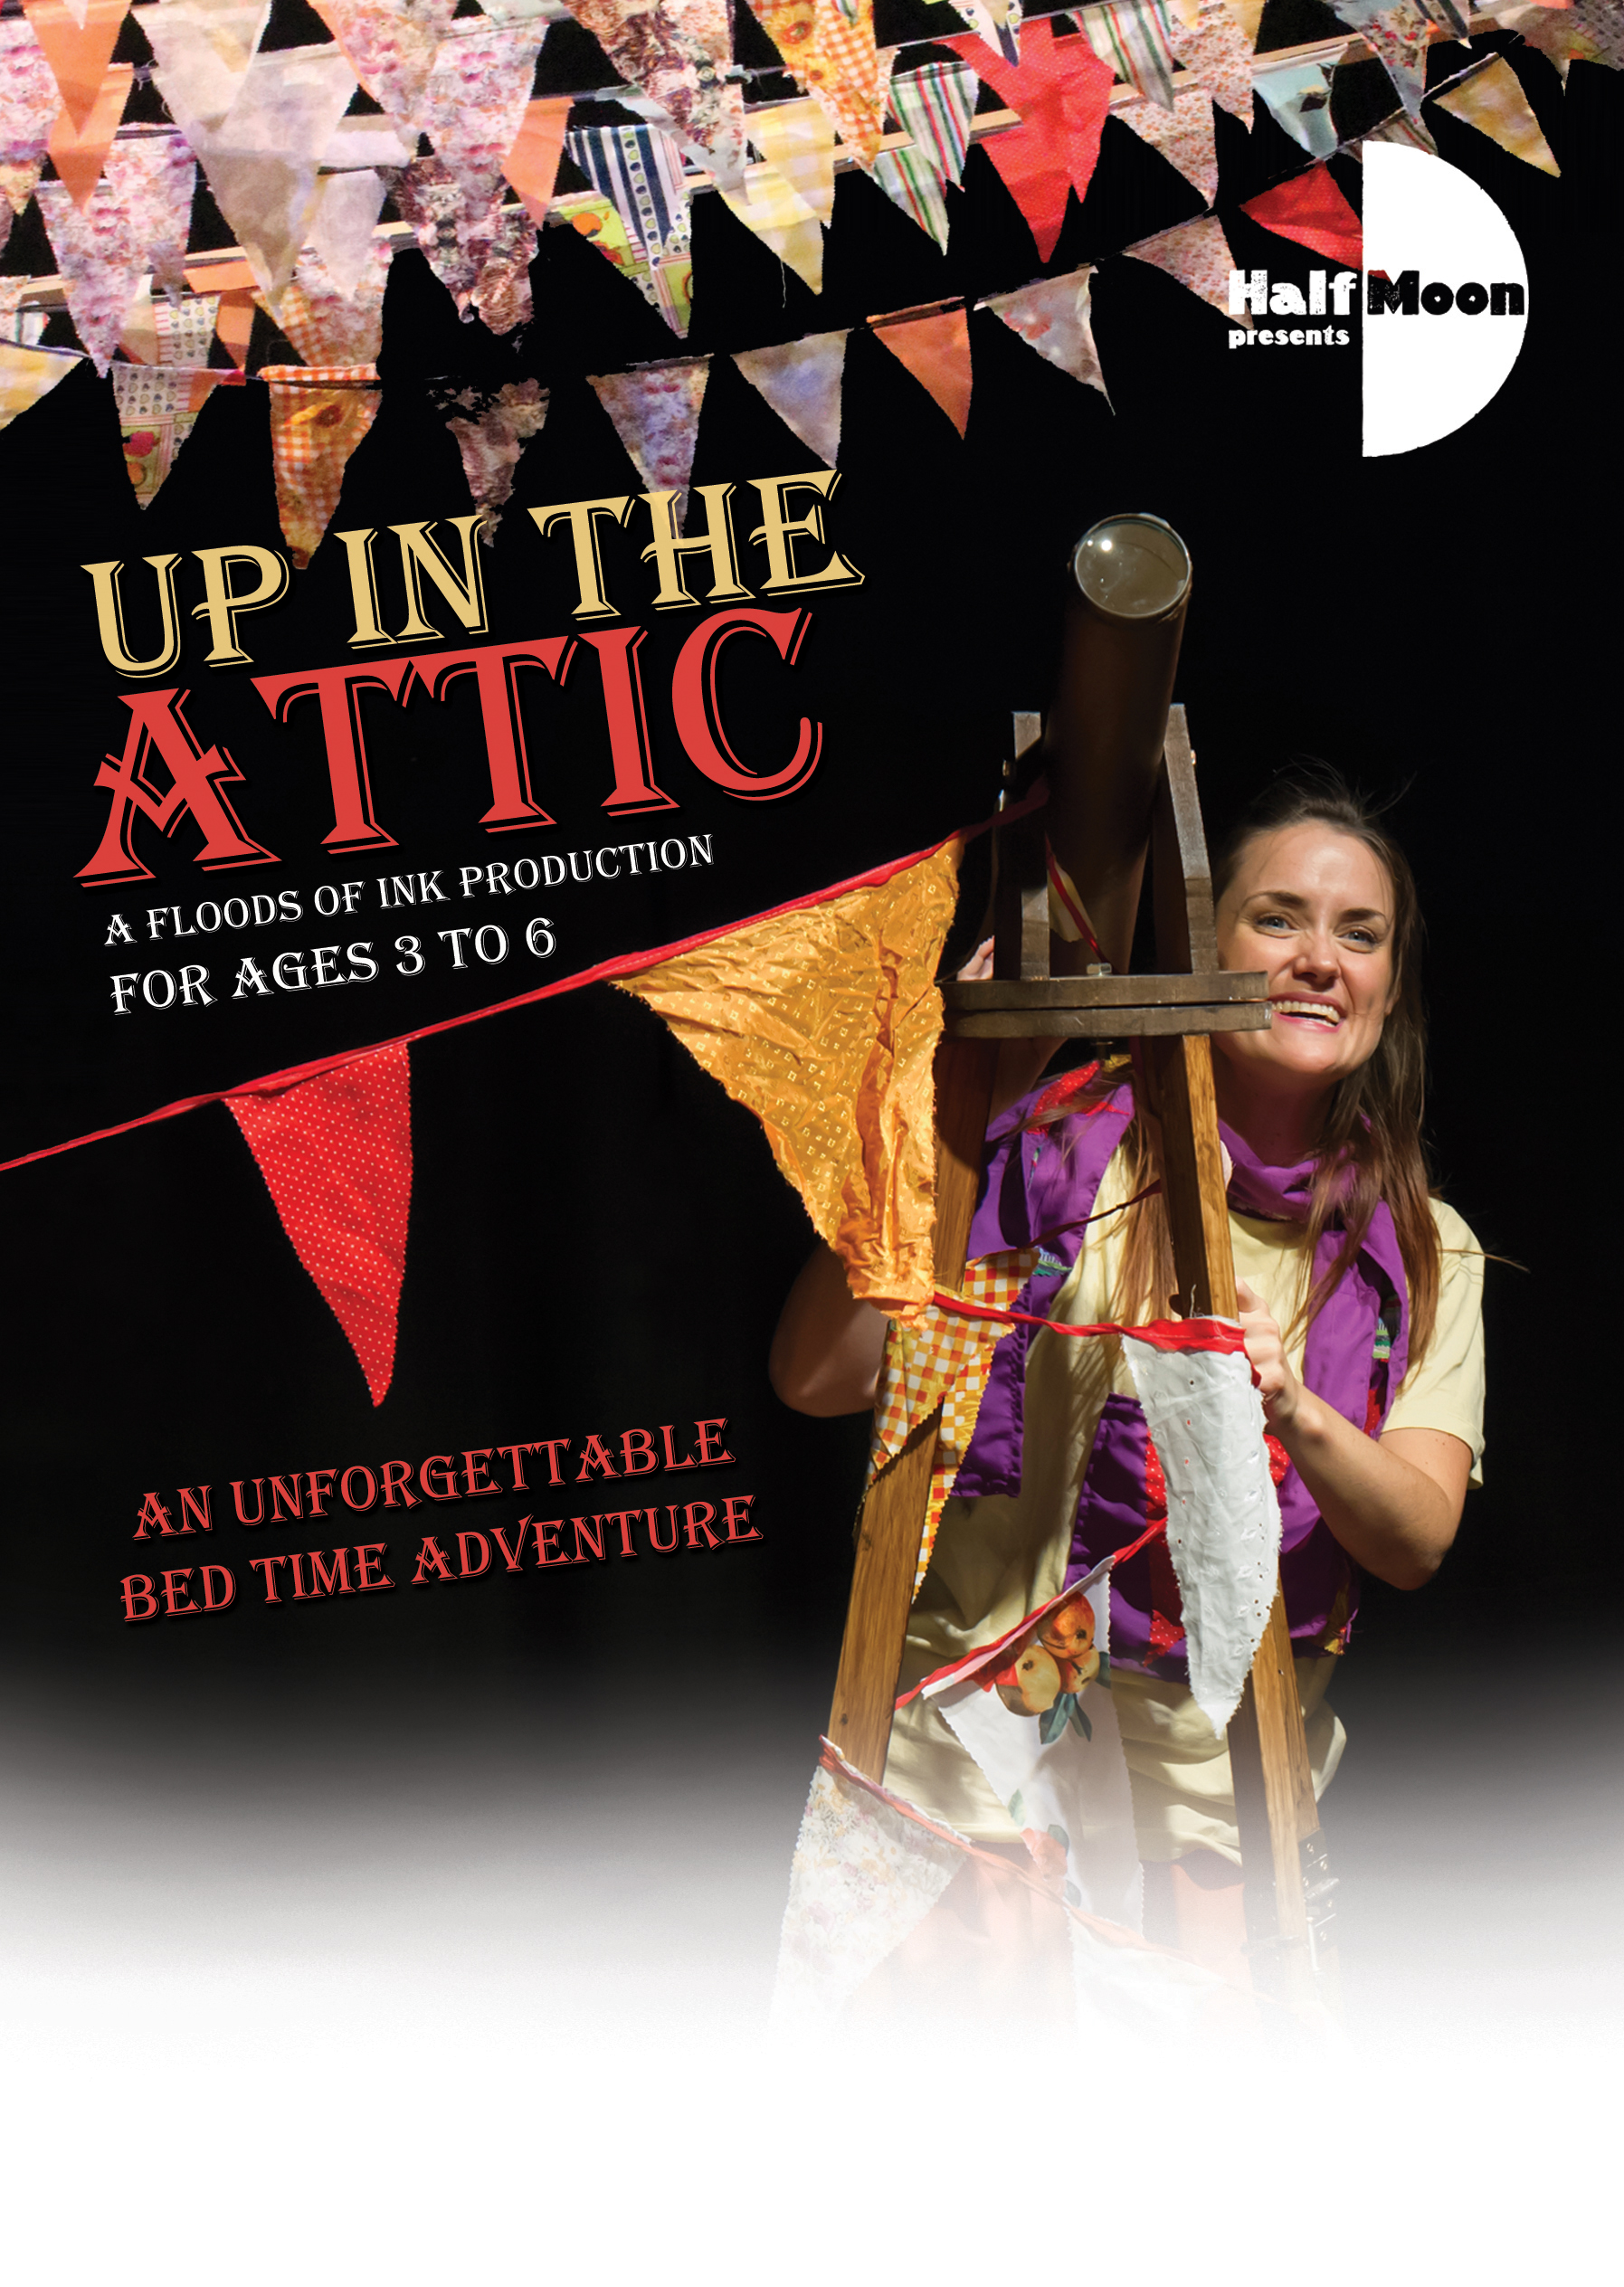 Up in the Attic - flyer